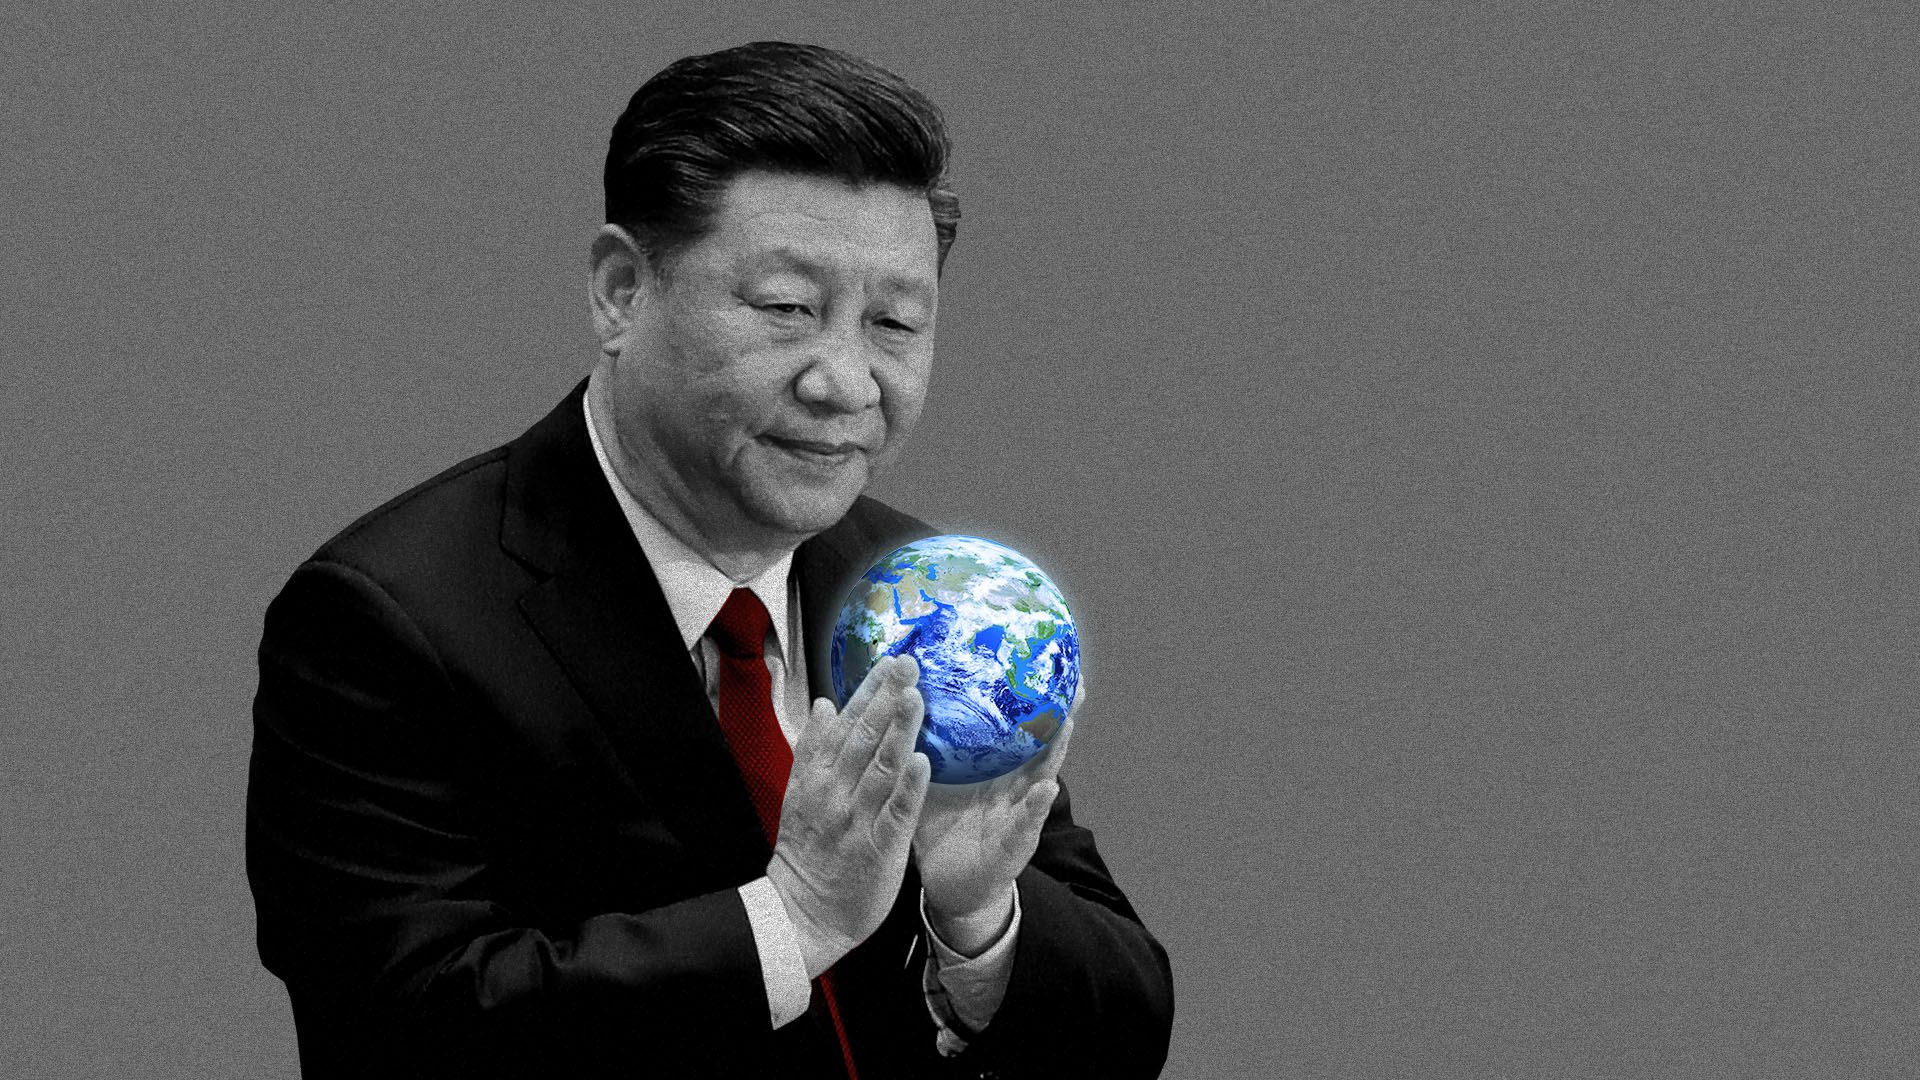 Illustration of President Xi Jinping holding a small globe